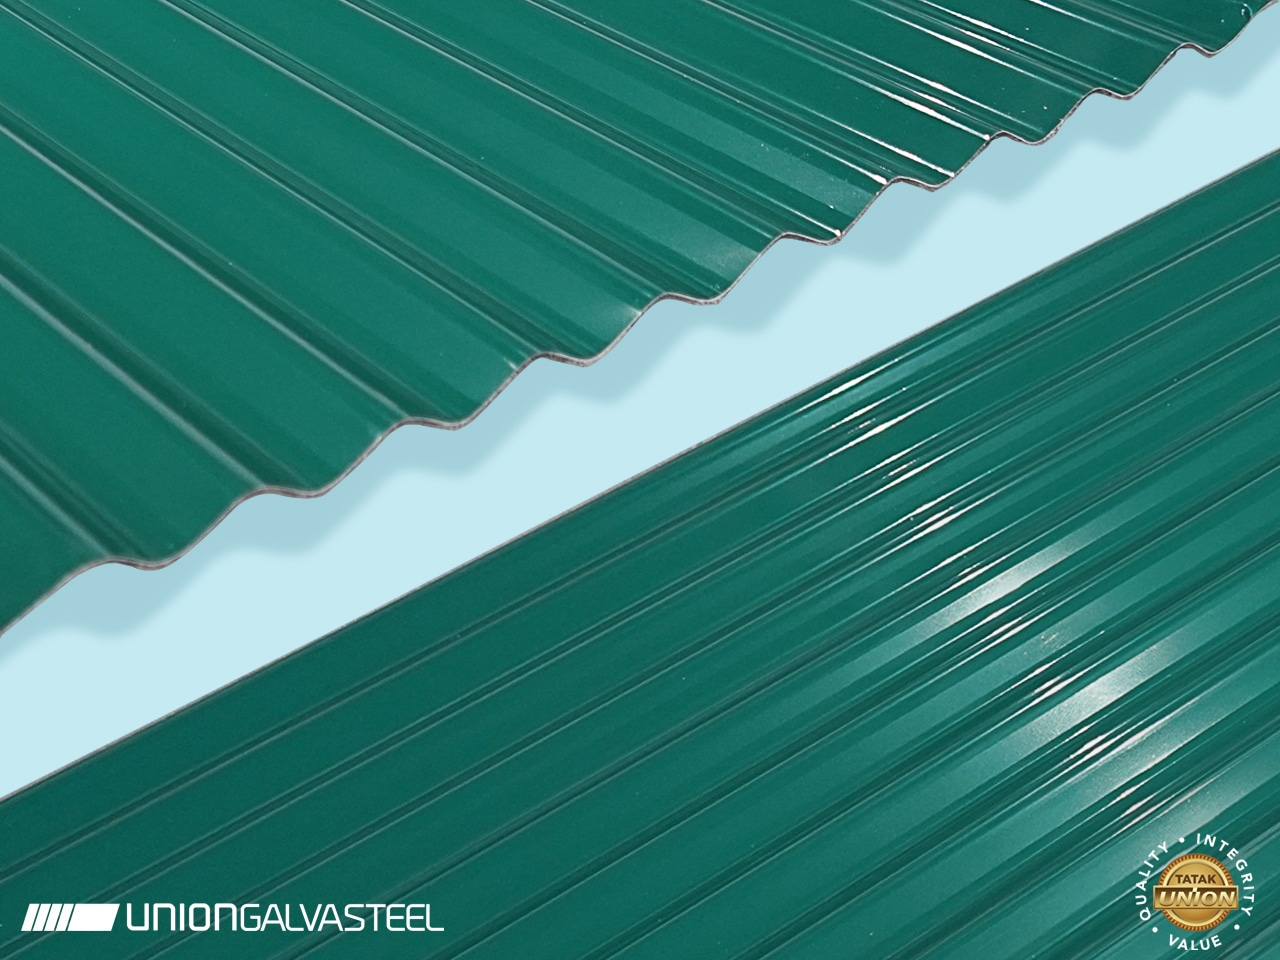 Corrugated Roof Buying Guide